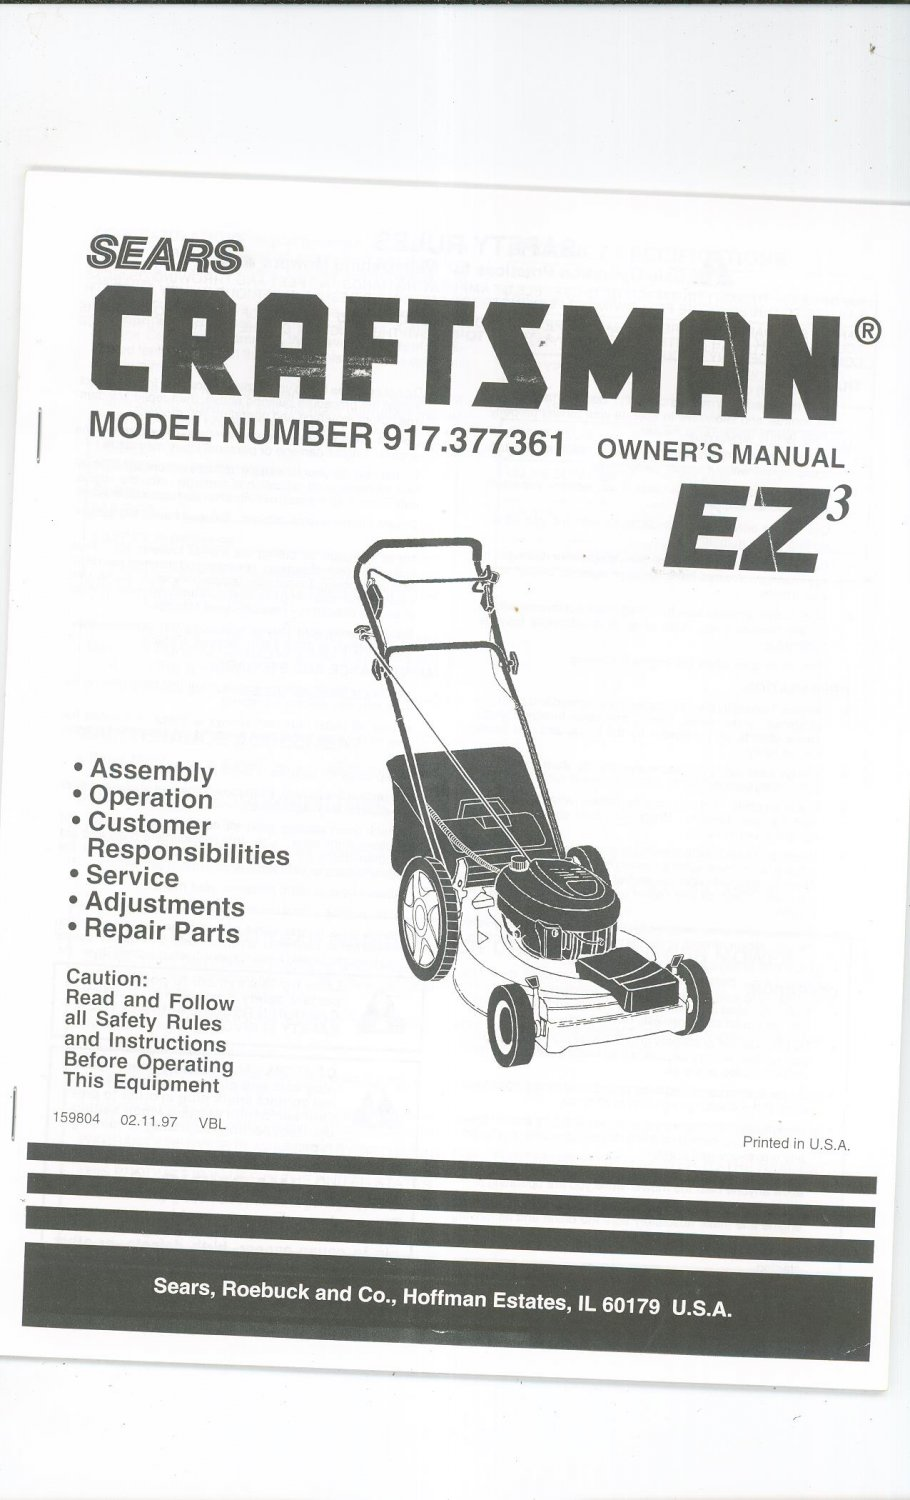 Sears Craftsman Model 917 Mower : Sears craftsman lawn mower ez model operating